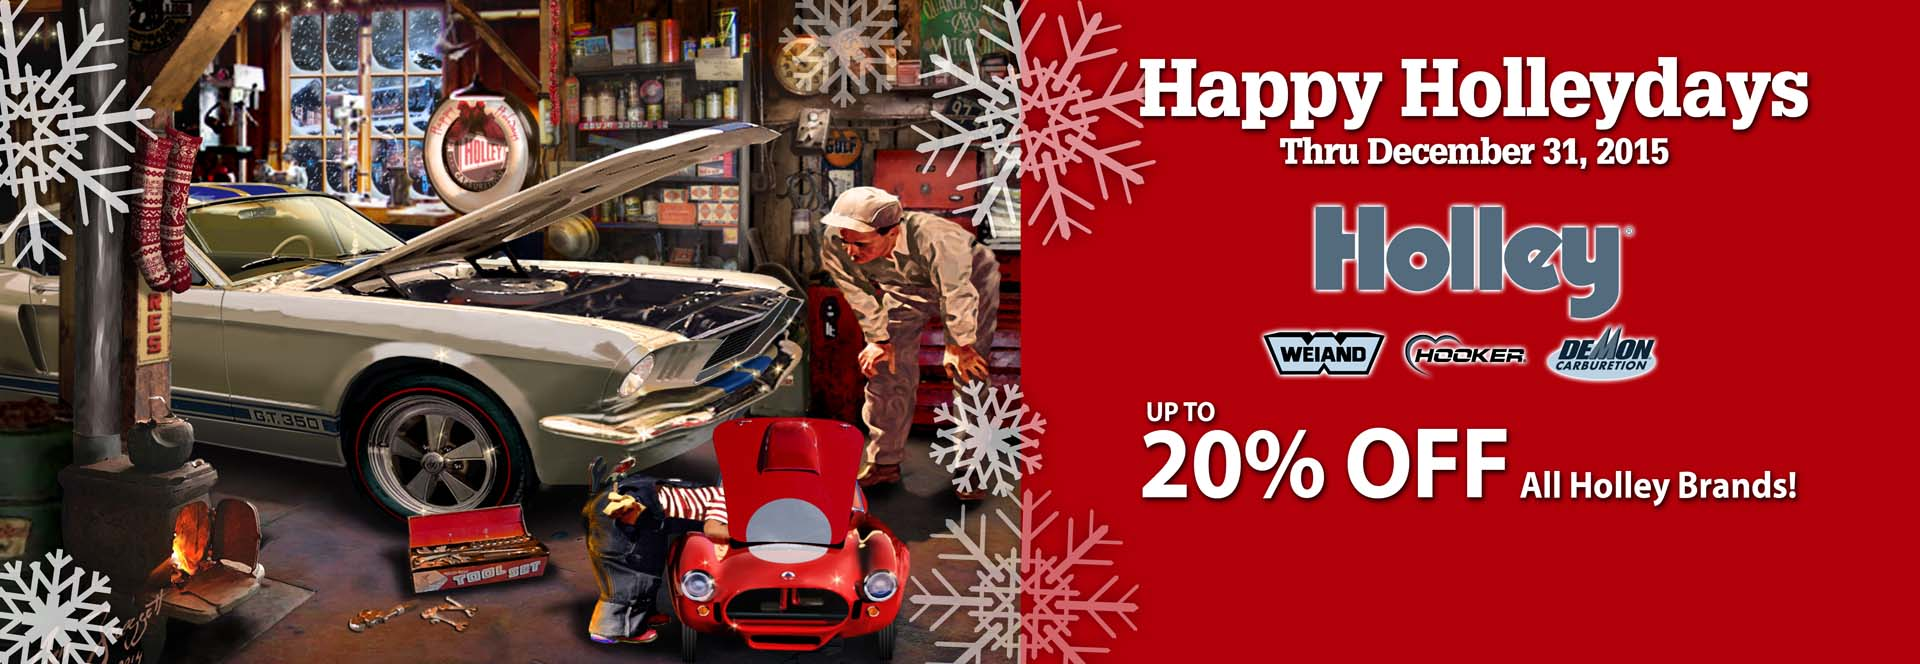 Save Up To 20% On Holley Products!